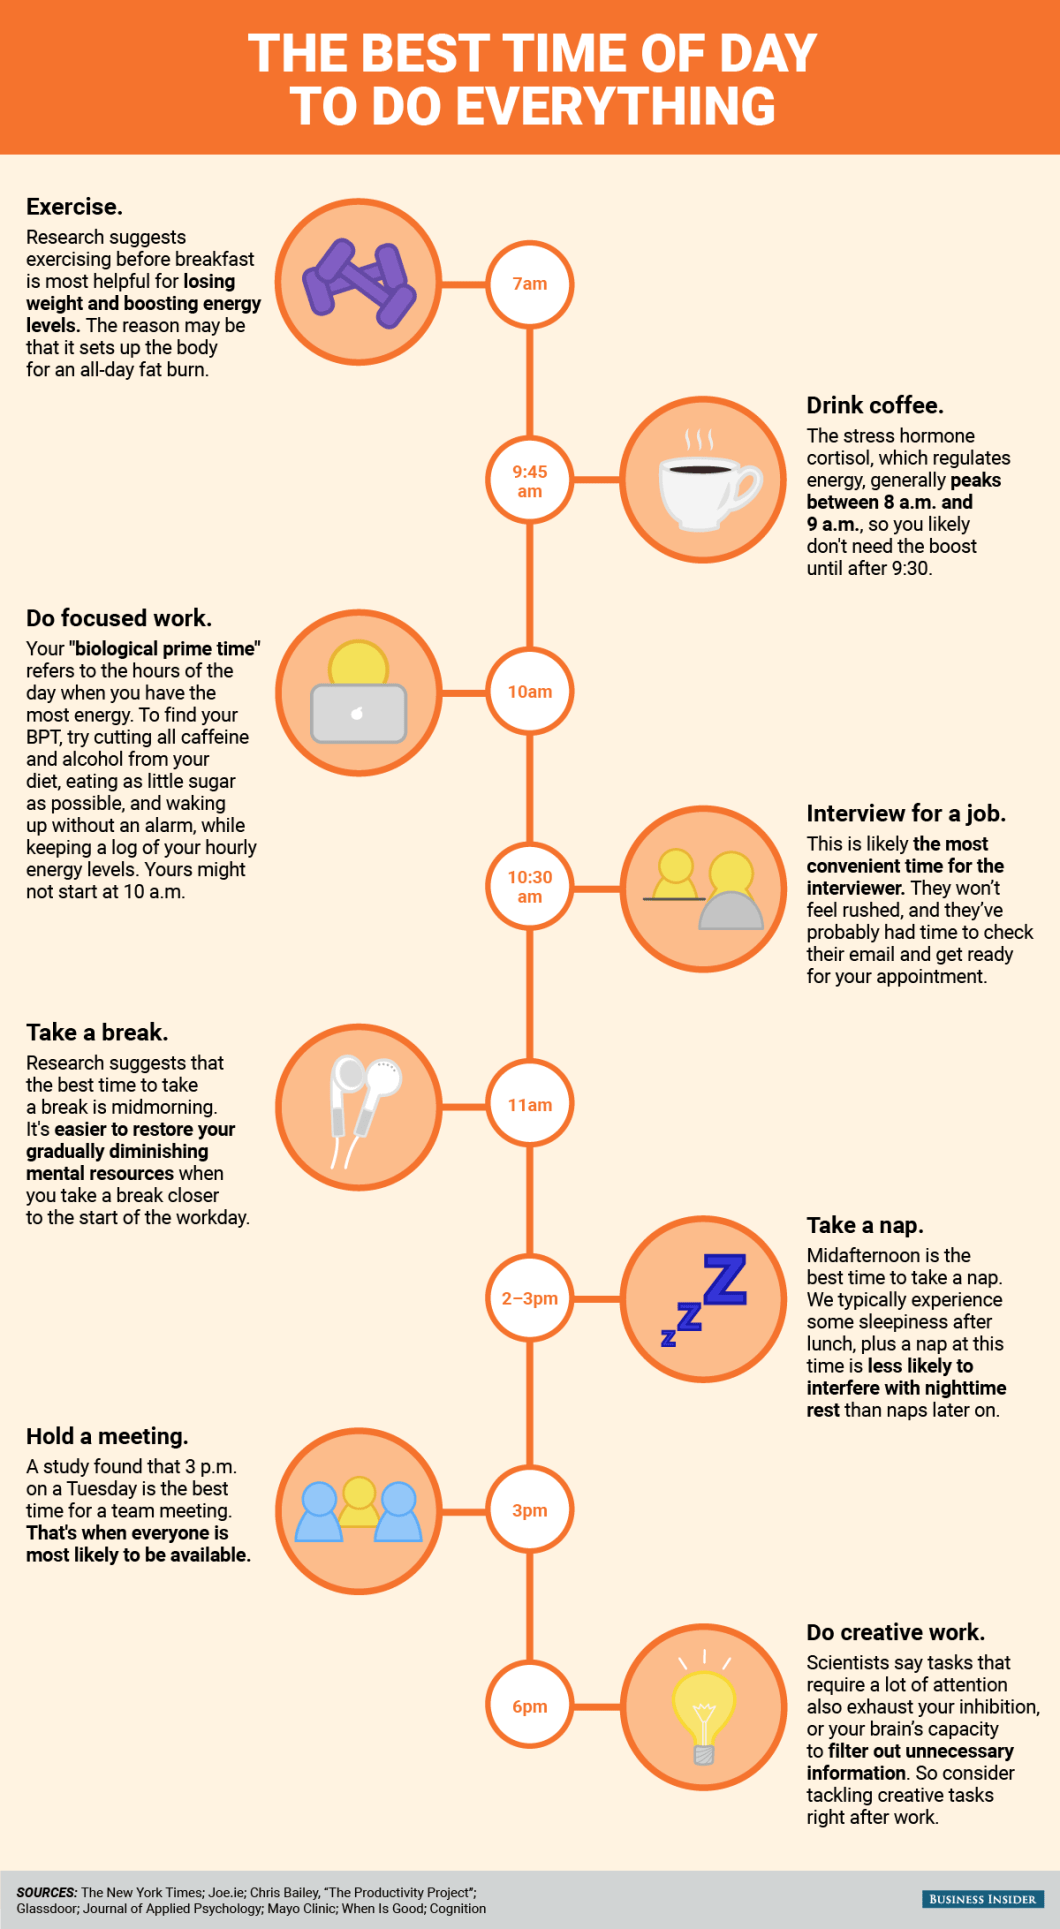 How to Maximize Productivity: Follow Your Body's Biological Rhythm - Infographic